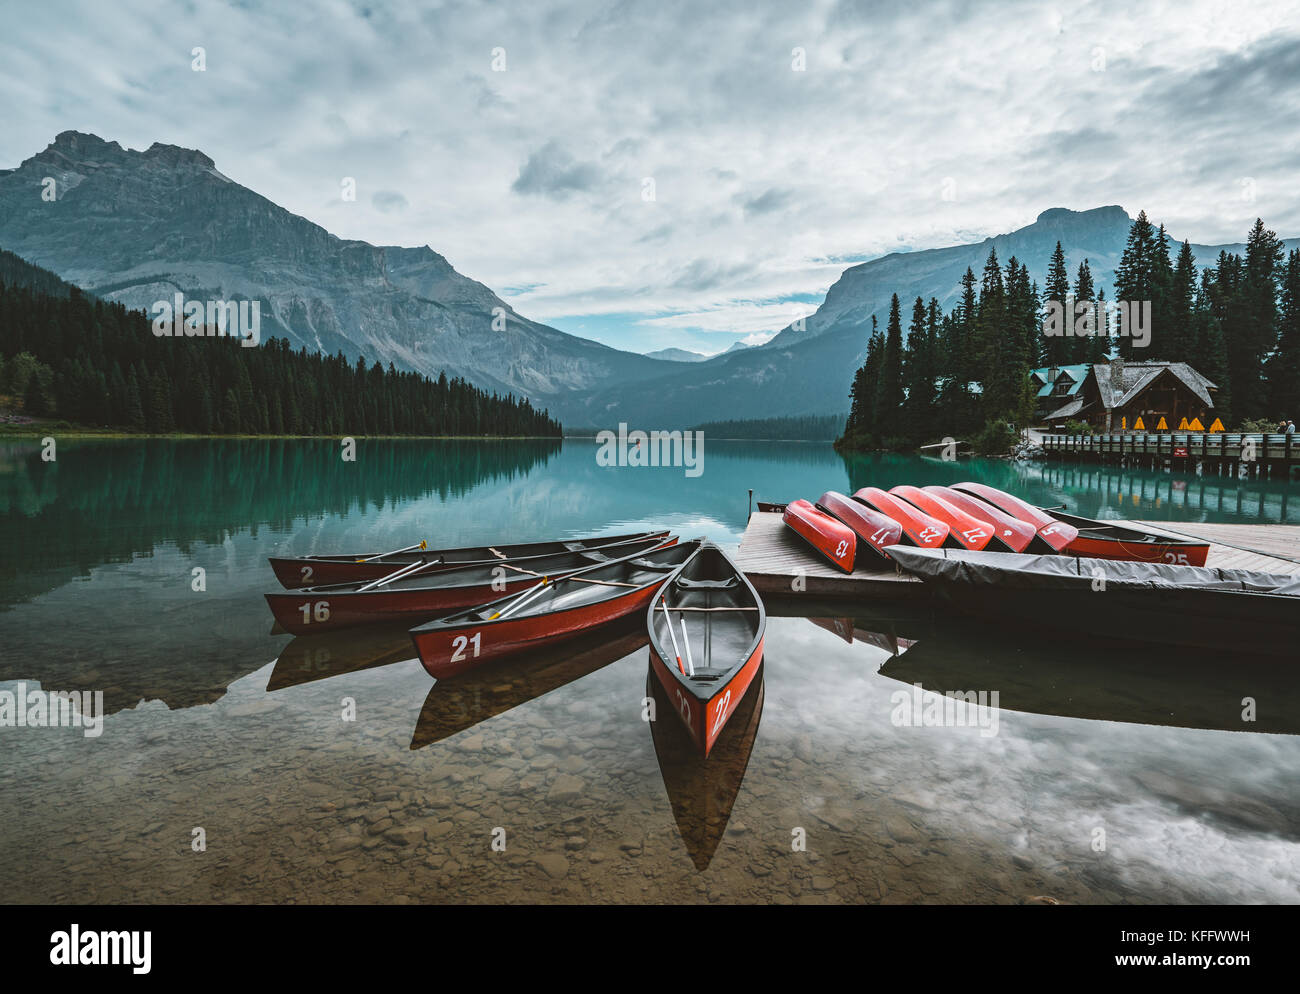 Canoes at Emerald Lake, Yoho National park Canada - Stock Image